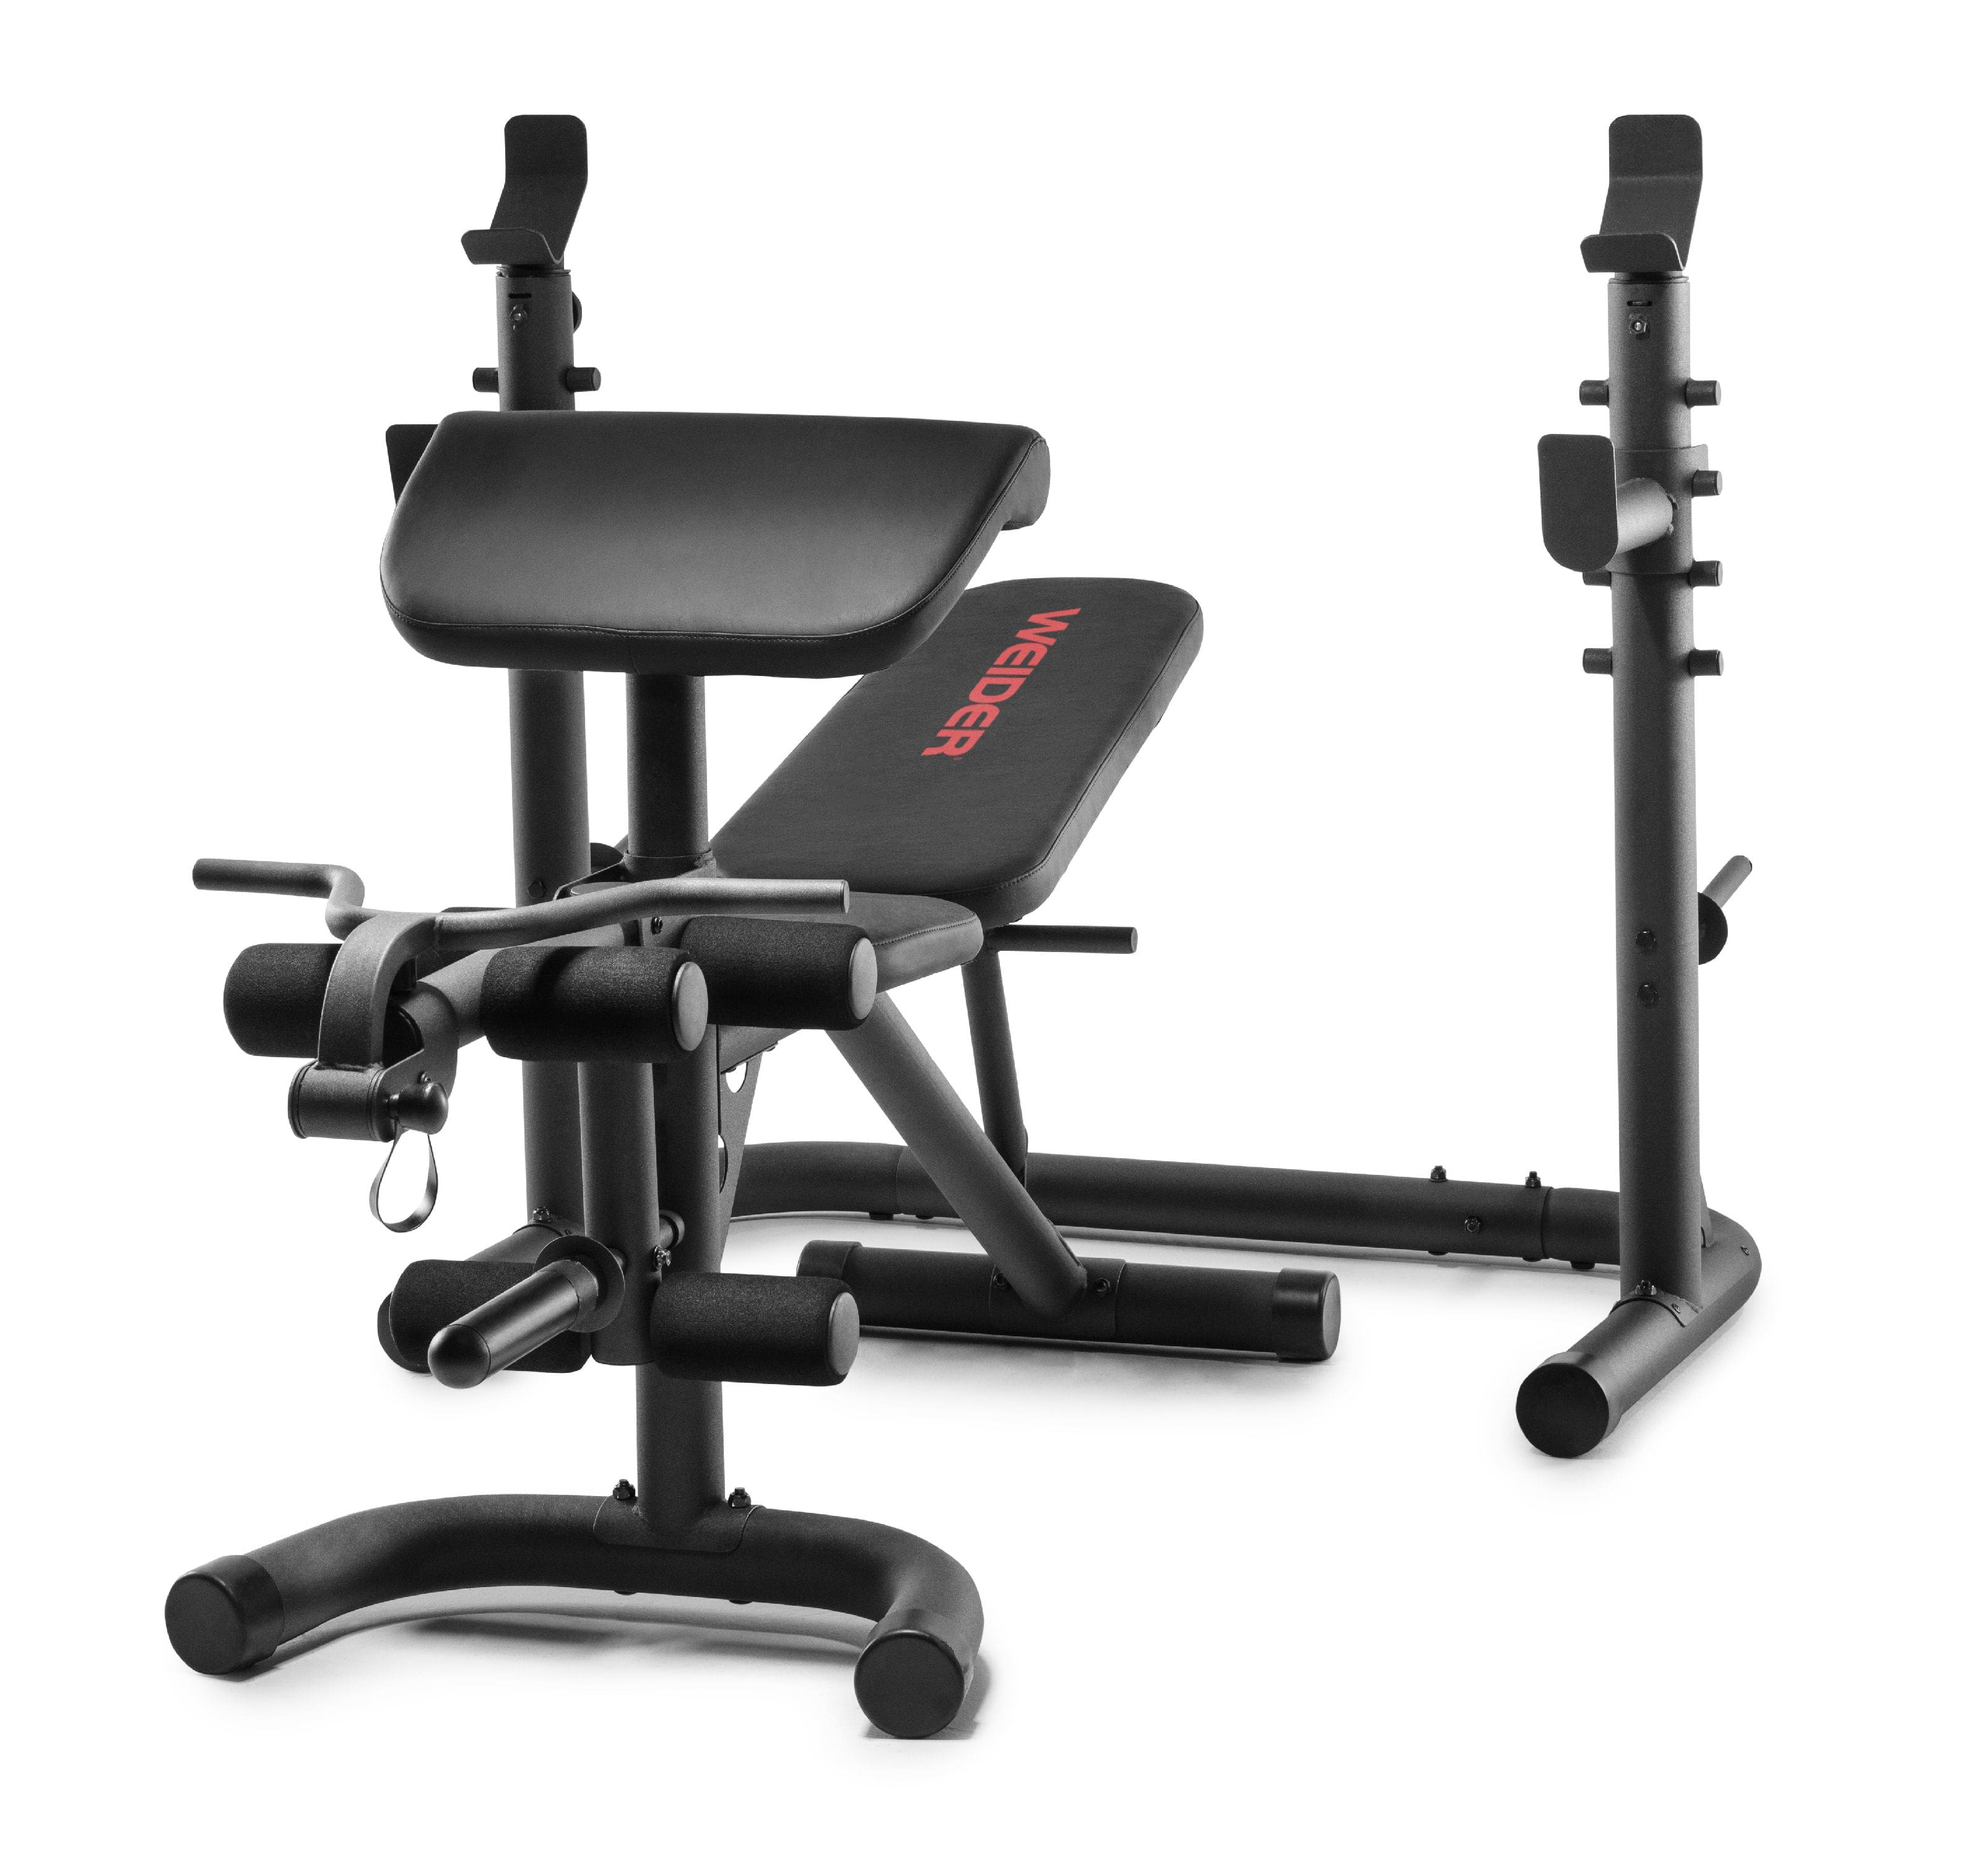 Weider XRS 20 Olympic Workout Bench with Independent Squat Rack and Preacher Pad + Free Shipping $199